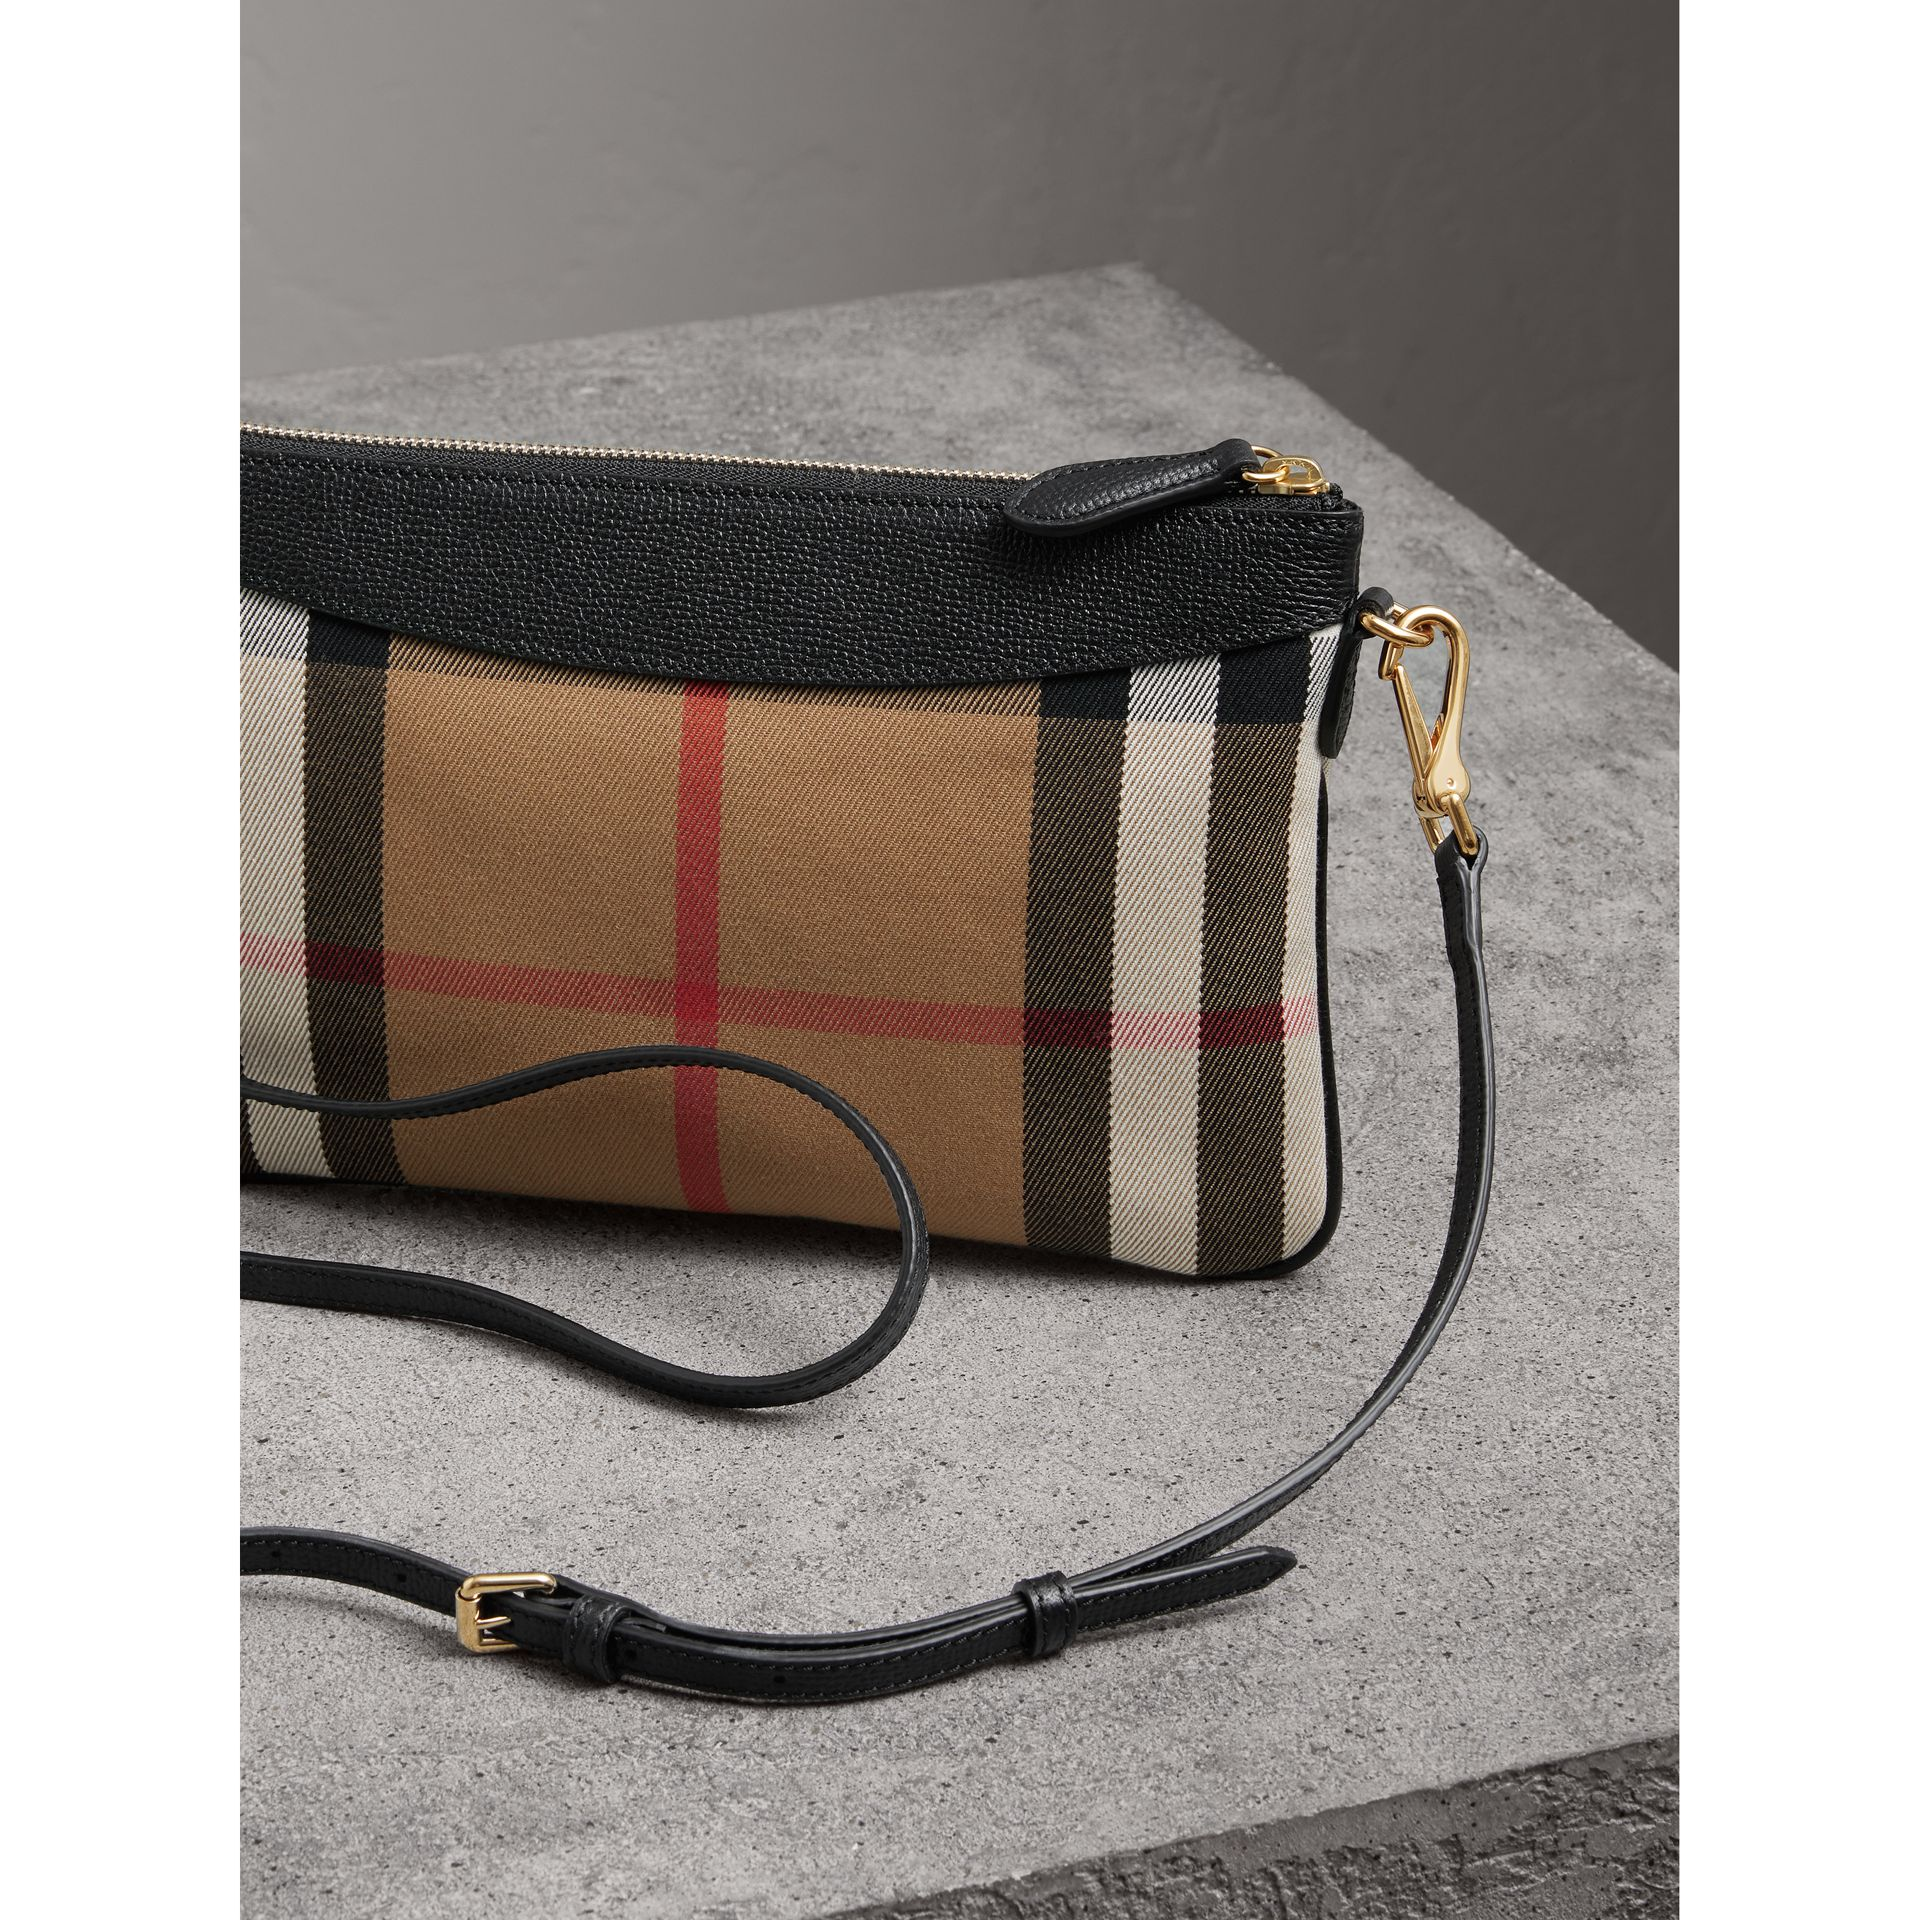 House Check and Leather Clutch Bag in Black - Women | Burberry - gallery image 4